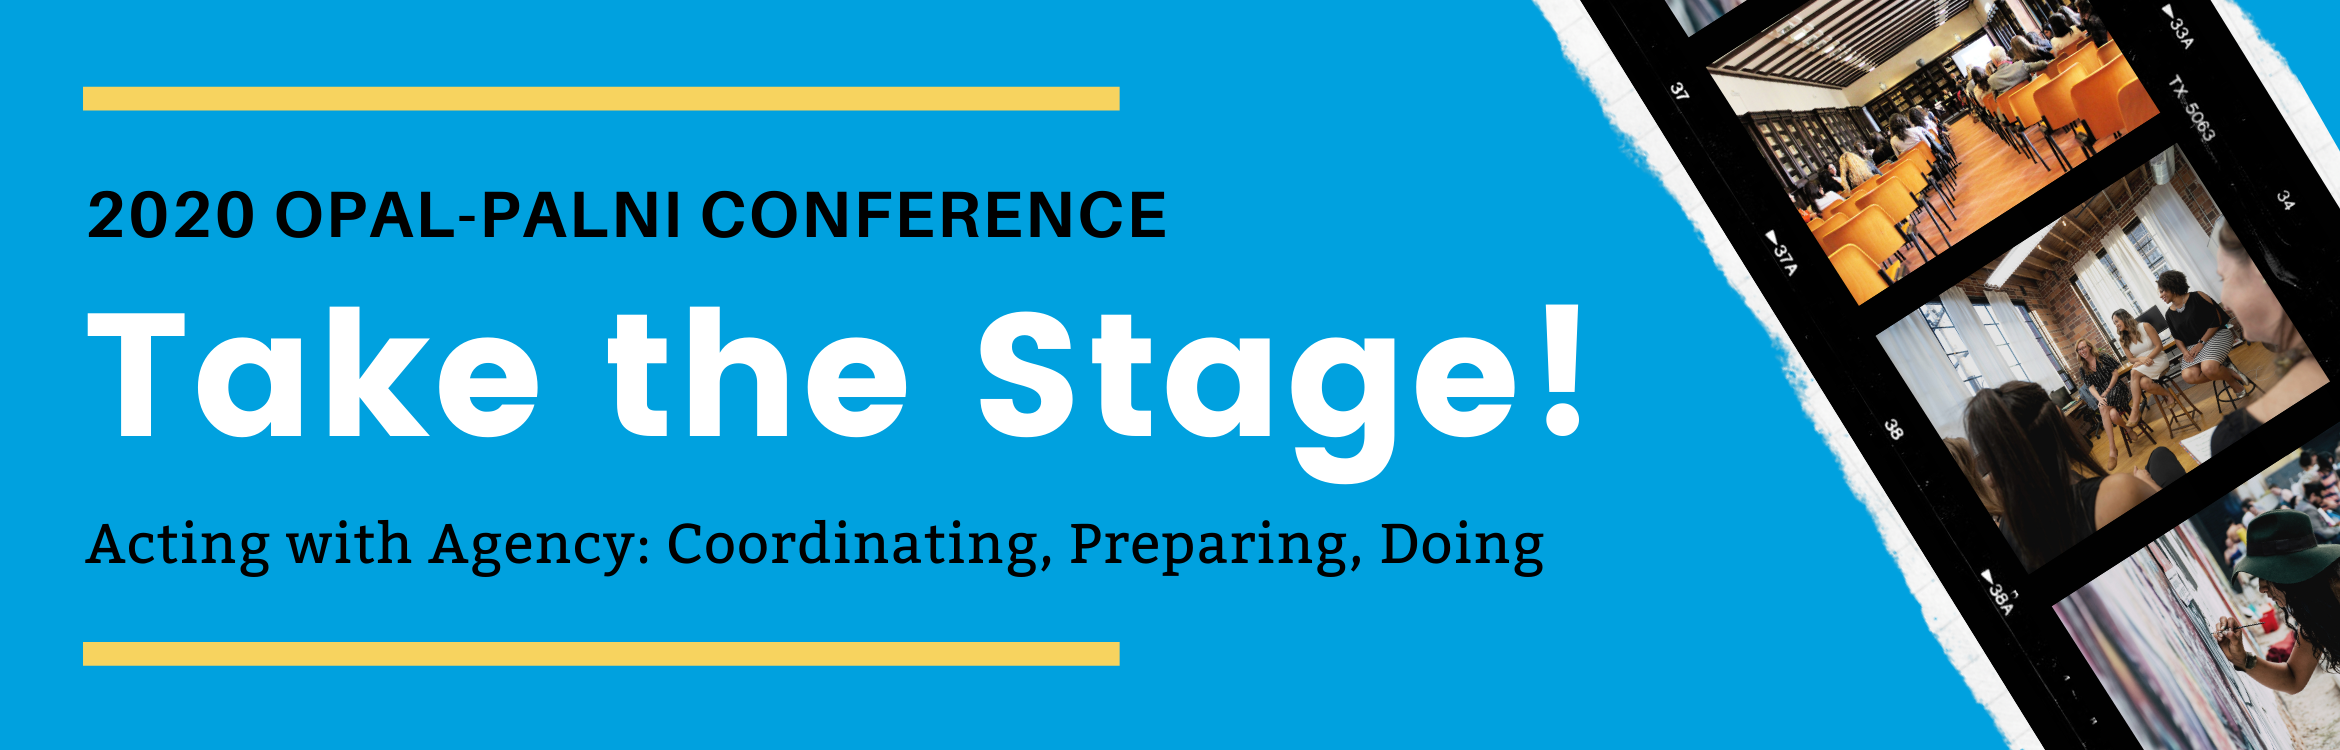 Banner for the 2020 OPAL-Conference, film strip style image in the top corner with the conference theme Take the State! Acting with Agency